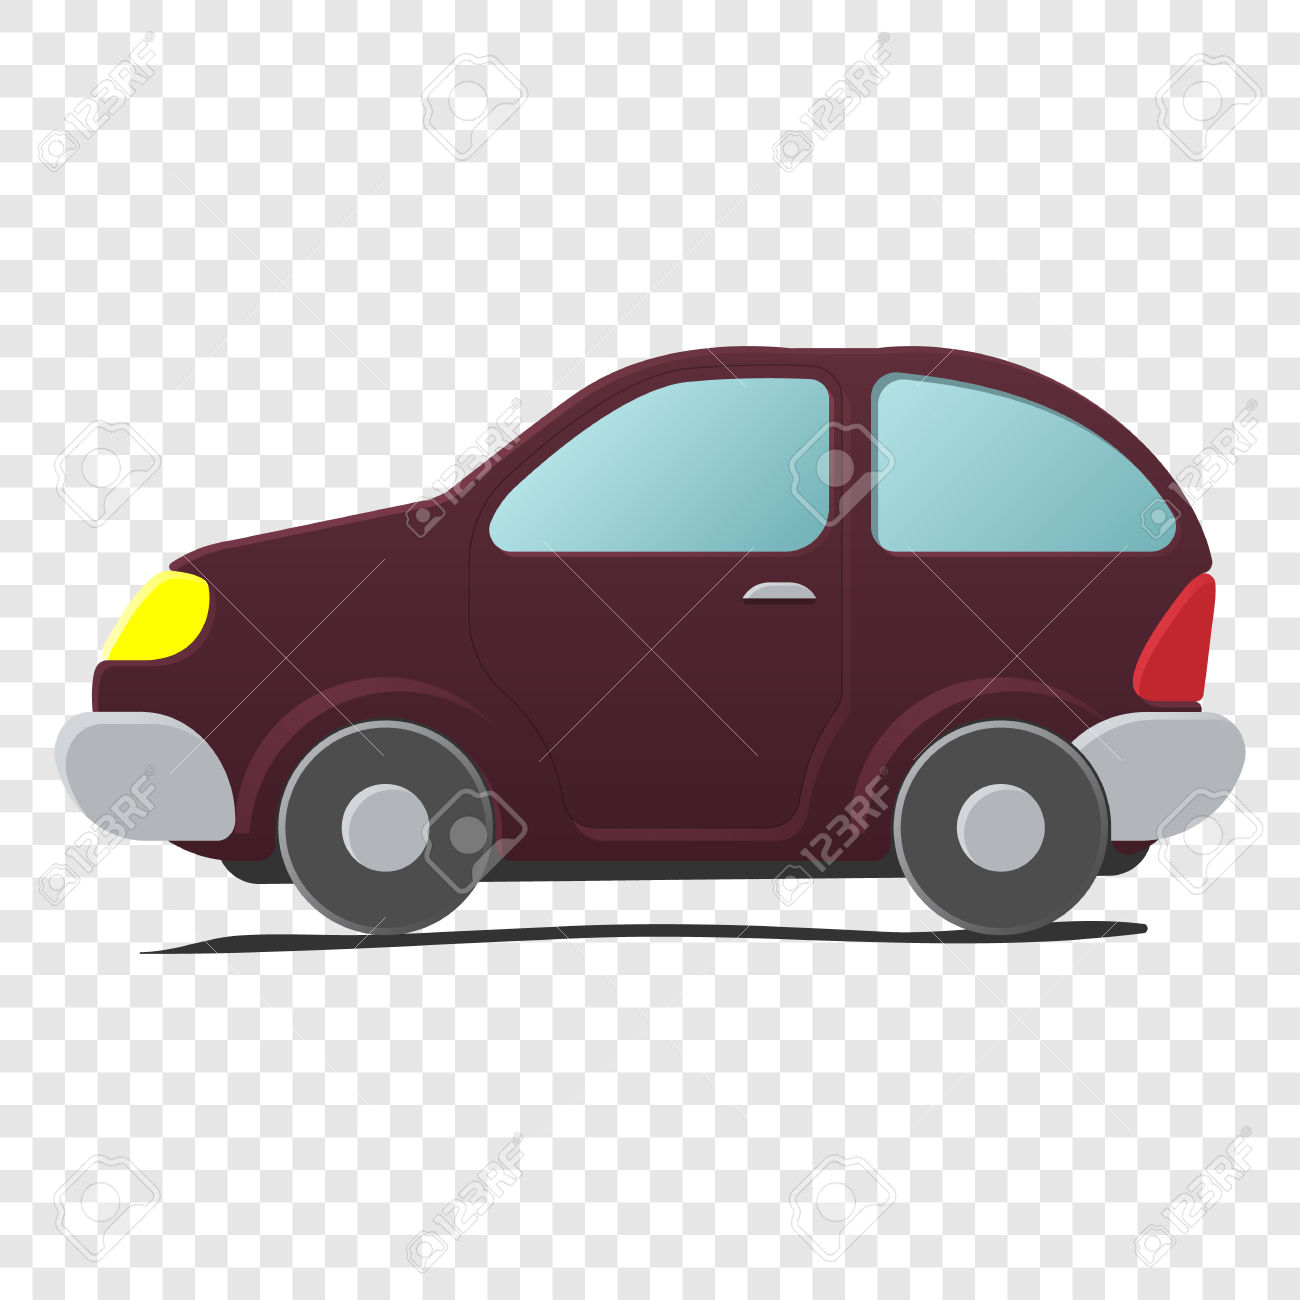 Free collection of Car clipart transparent background. Download.